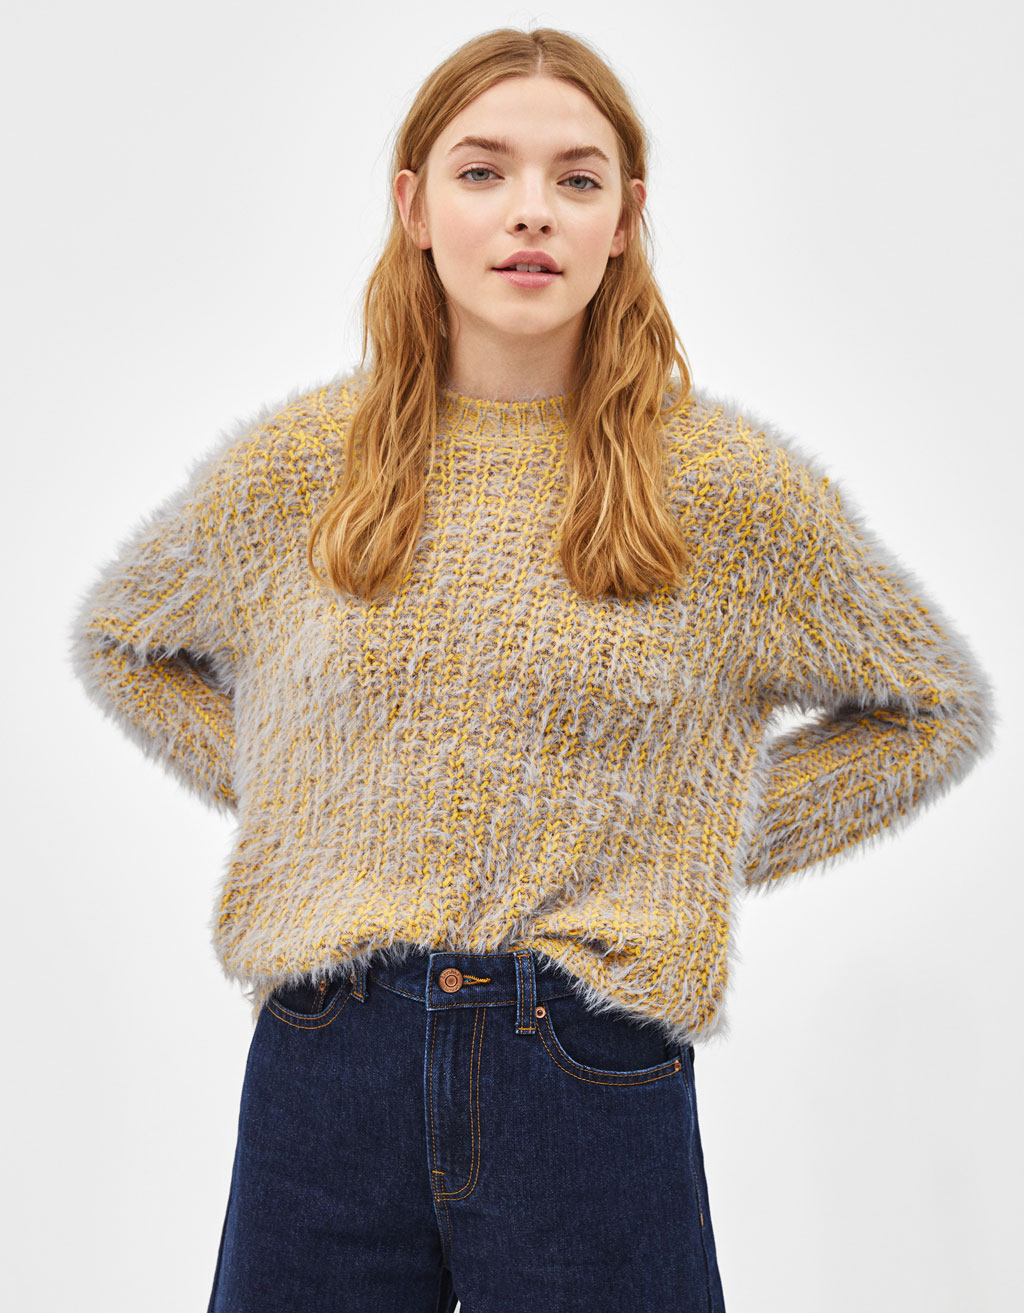 Faux fur knit sweater